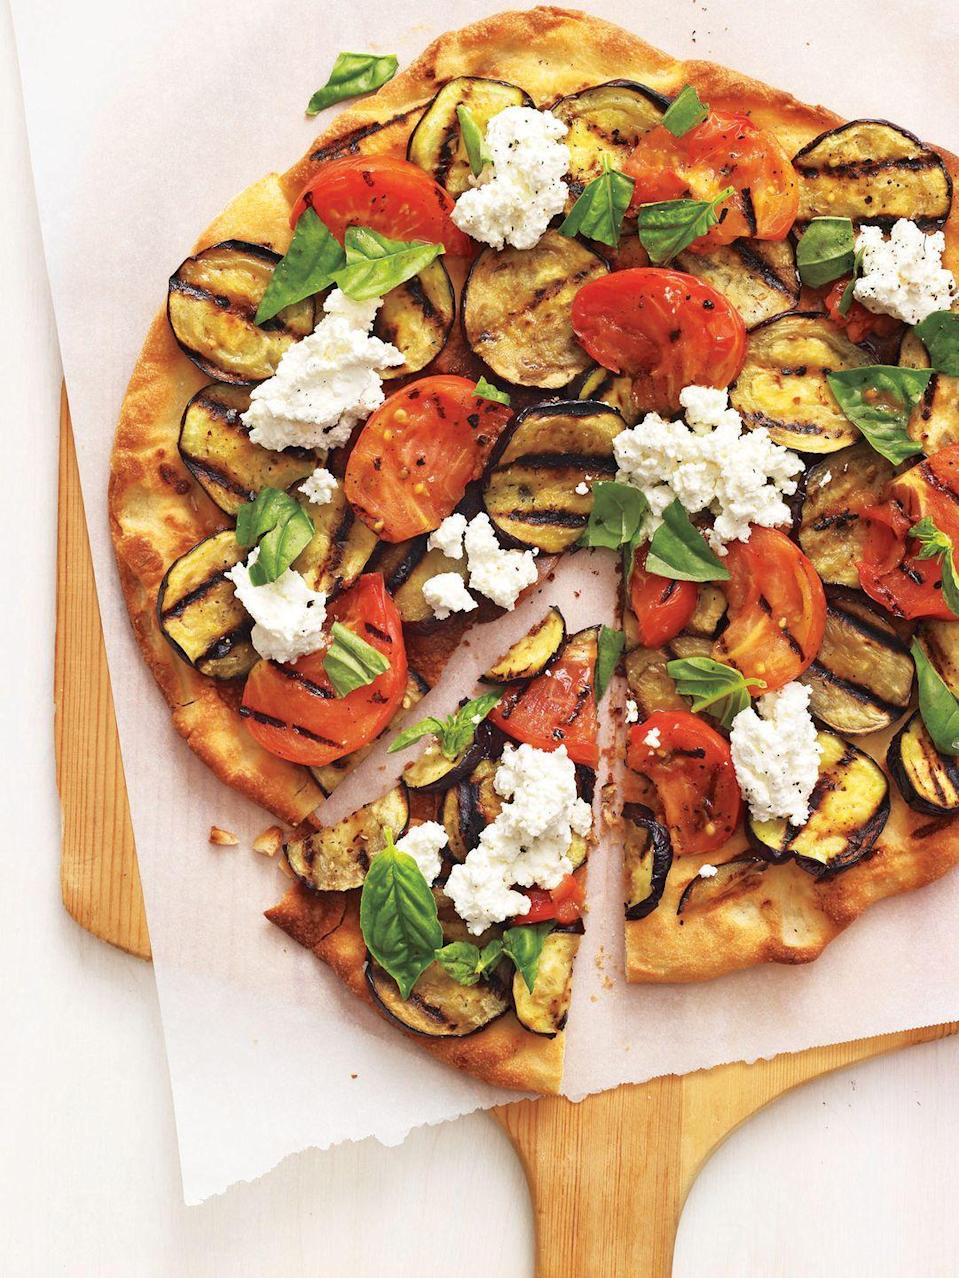 "<p>Take the flavors of Eggplant Parmesan and transform them into a mouthwatering pie with store-bought dough and generous dollops of ricotta.</p><p><em><a href=""https://www.womansday.com/food-recipes/food-drinks/recipes/a11722/grilled-eggplant-parmesan-pizza-recipe-122958/"" rel=""nofollow noopener"" target=""_blank"" data-ylk=""slk:Get the recipe from Woman's Day »"" class=""link rapid-noclick-resp"">Get the recipe from Woman's Day »</a></em></p>"